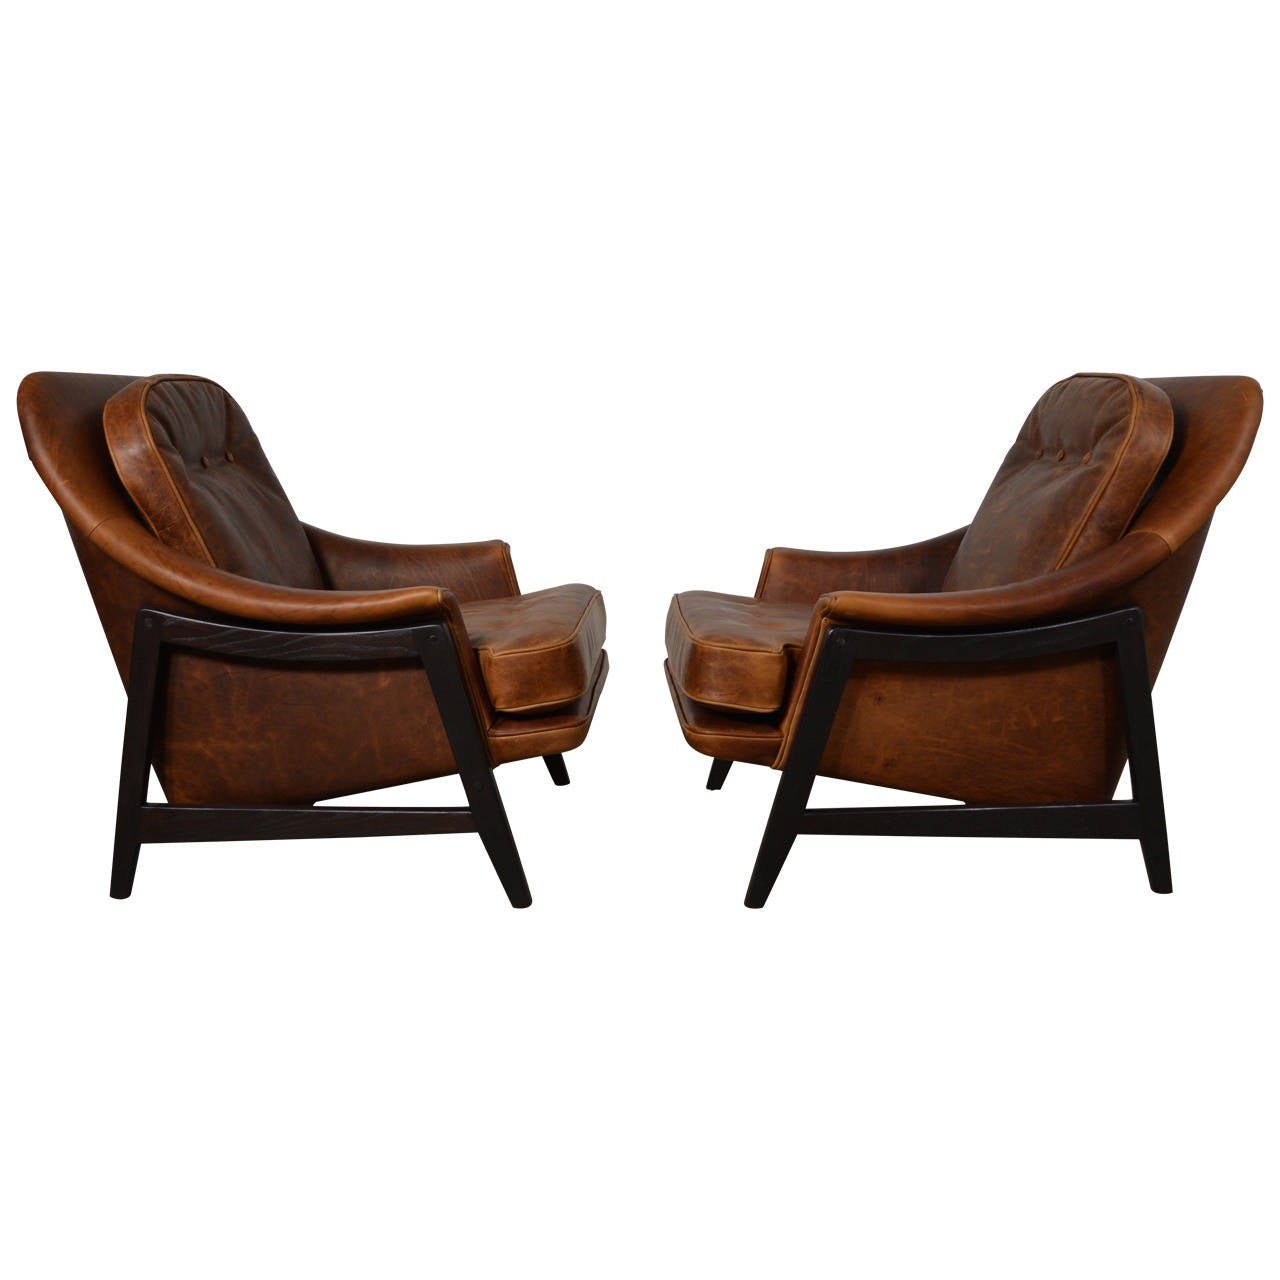 Edward wormley leather janus lounge chairs at 1stdibs - Edward wormley chairs ...